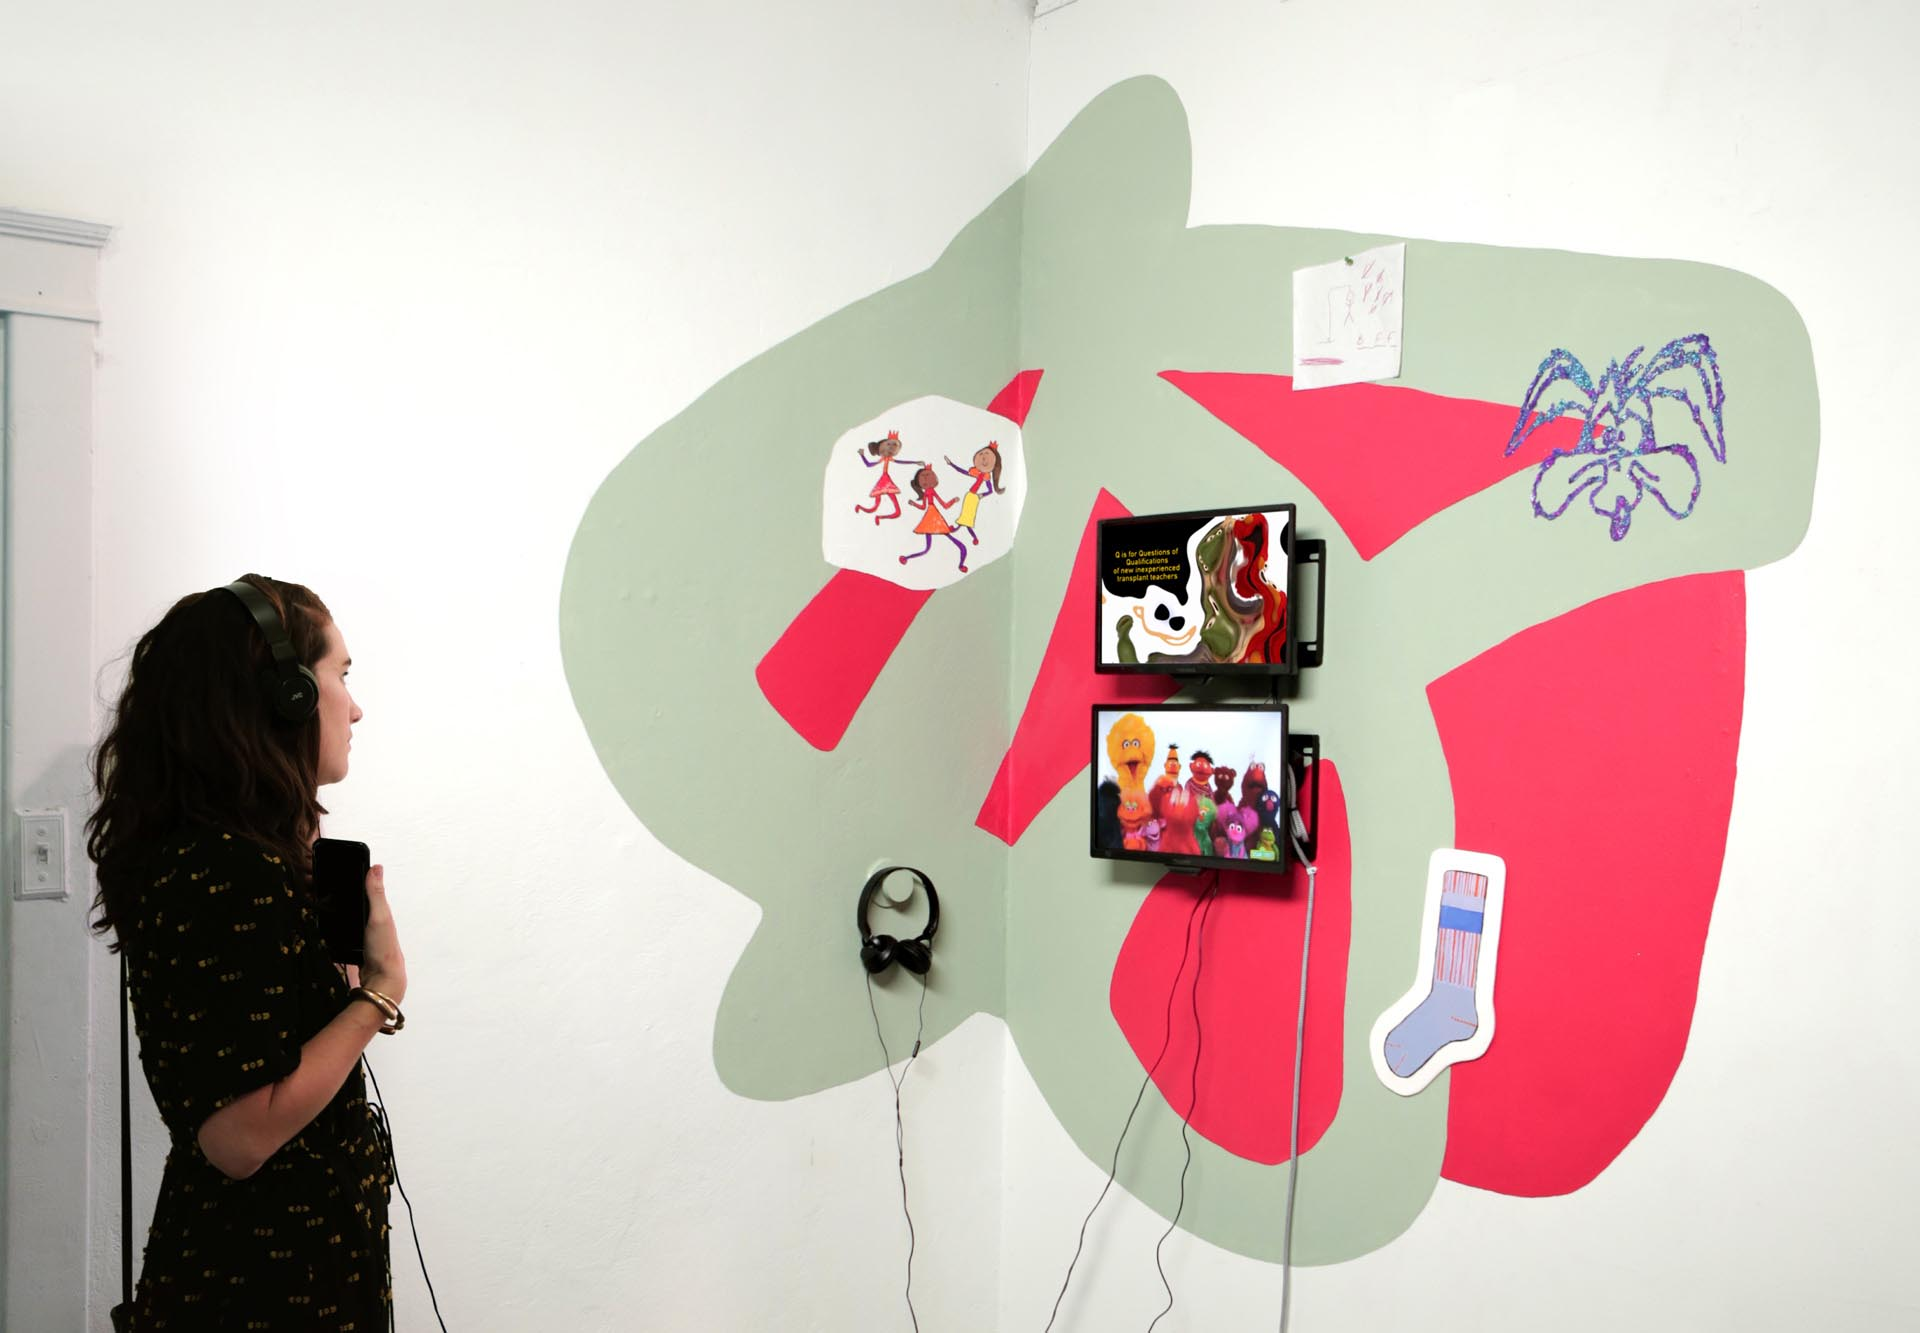 Marta Rodriguez Maleck, Marvin the Martian, 2018, latex paint, sticker paper, glitter, found student sketch, monitor, headphones, Duration : 3 minutes 20 seconds, 5' x 6'